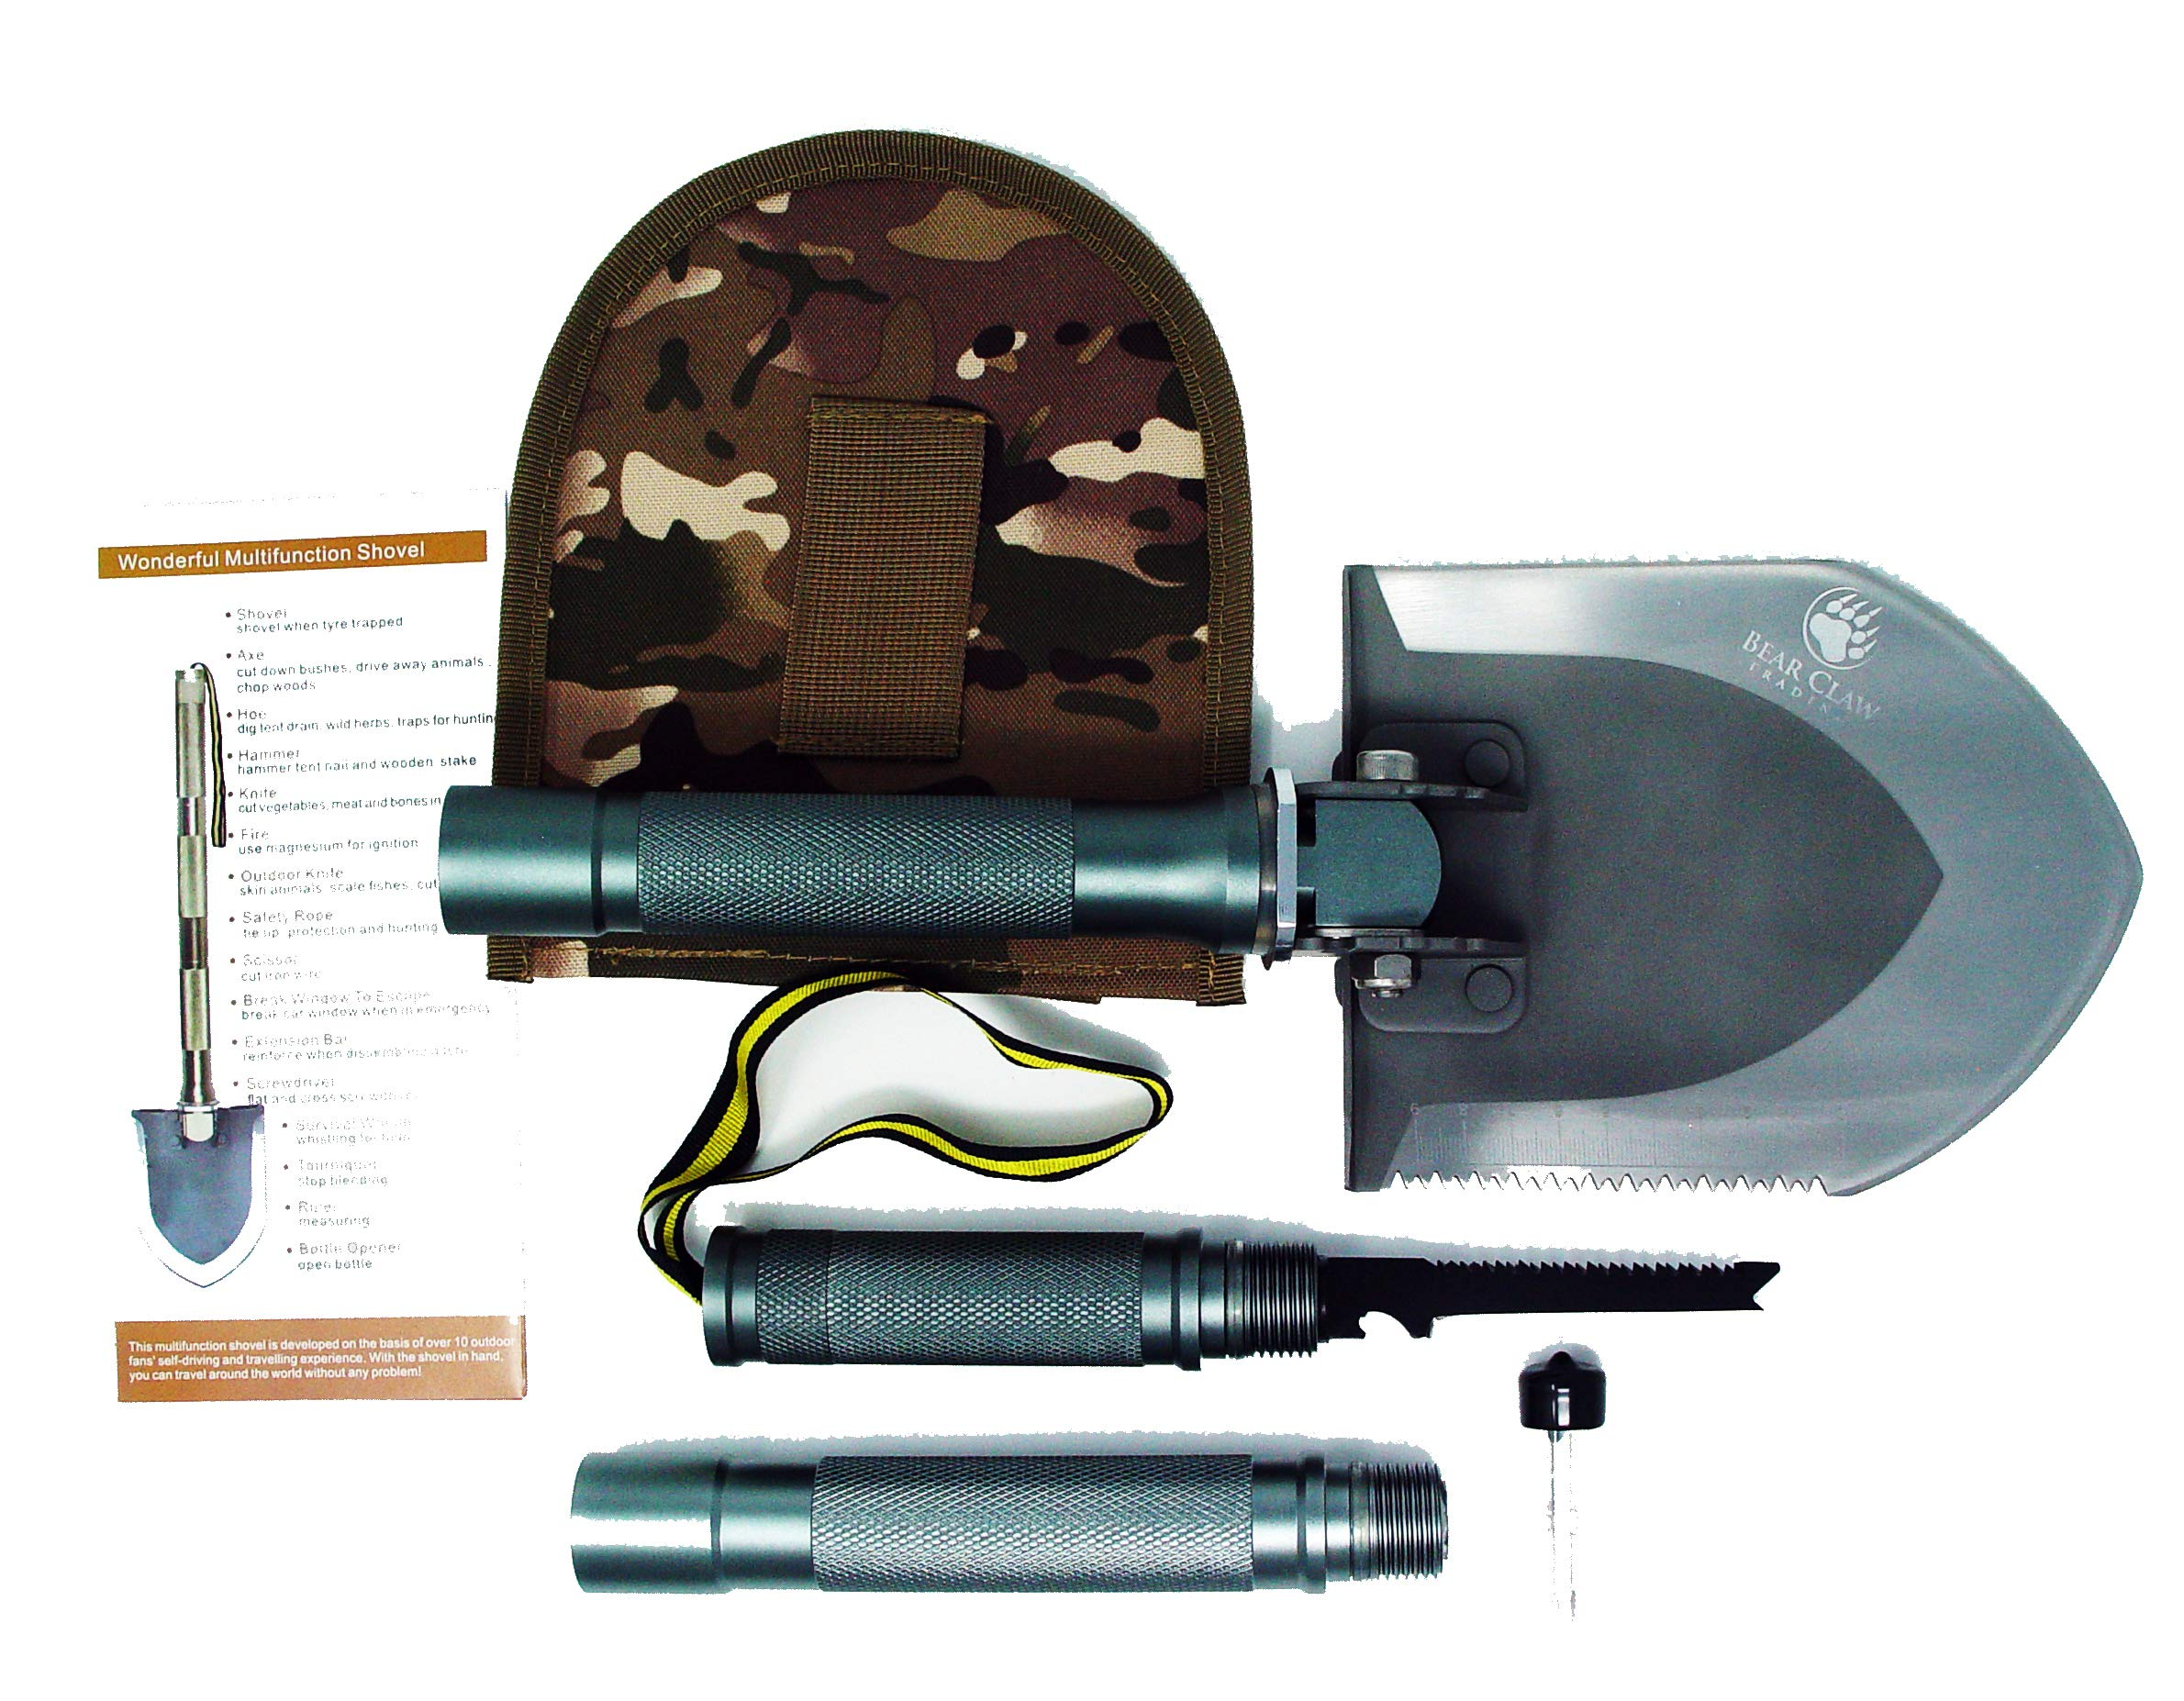 Military Folding Shovel Multitool - Great for 4x4, Jeep, Offroad, ATV, Camping, Military, Hunting, BoyScouts and Survival Situations.